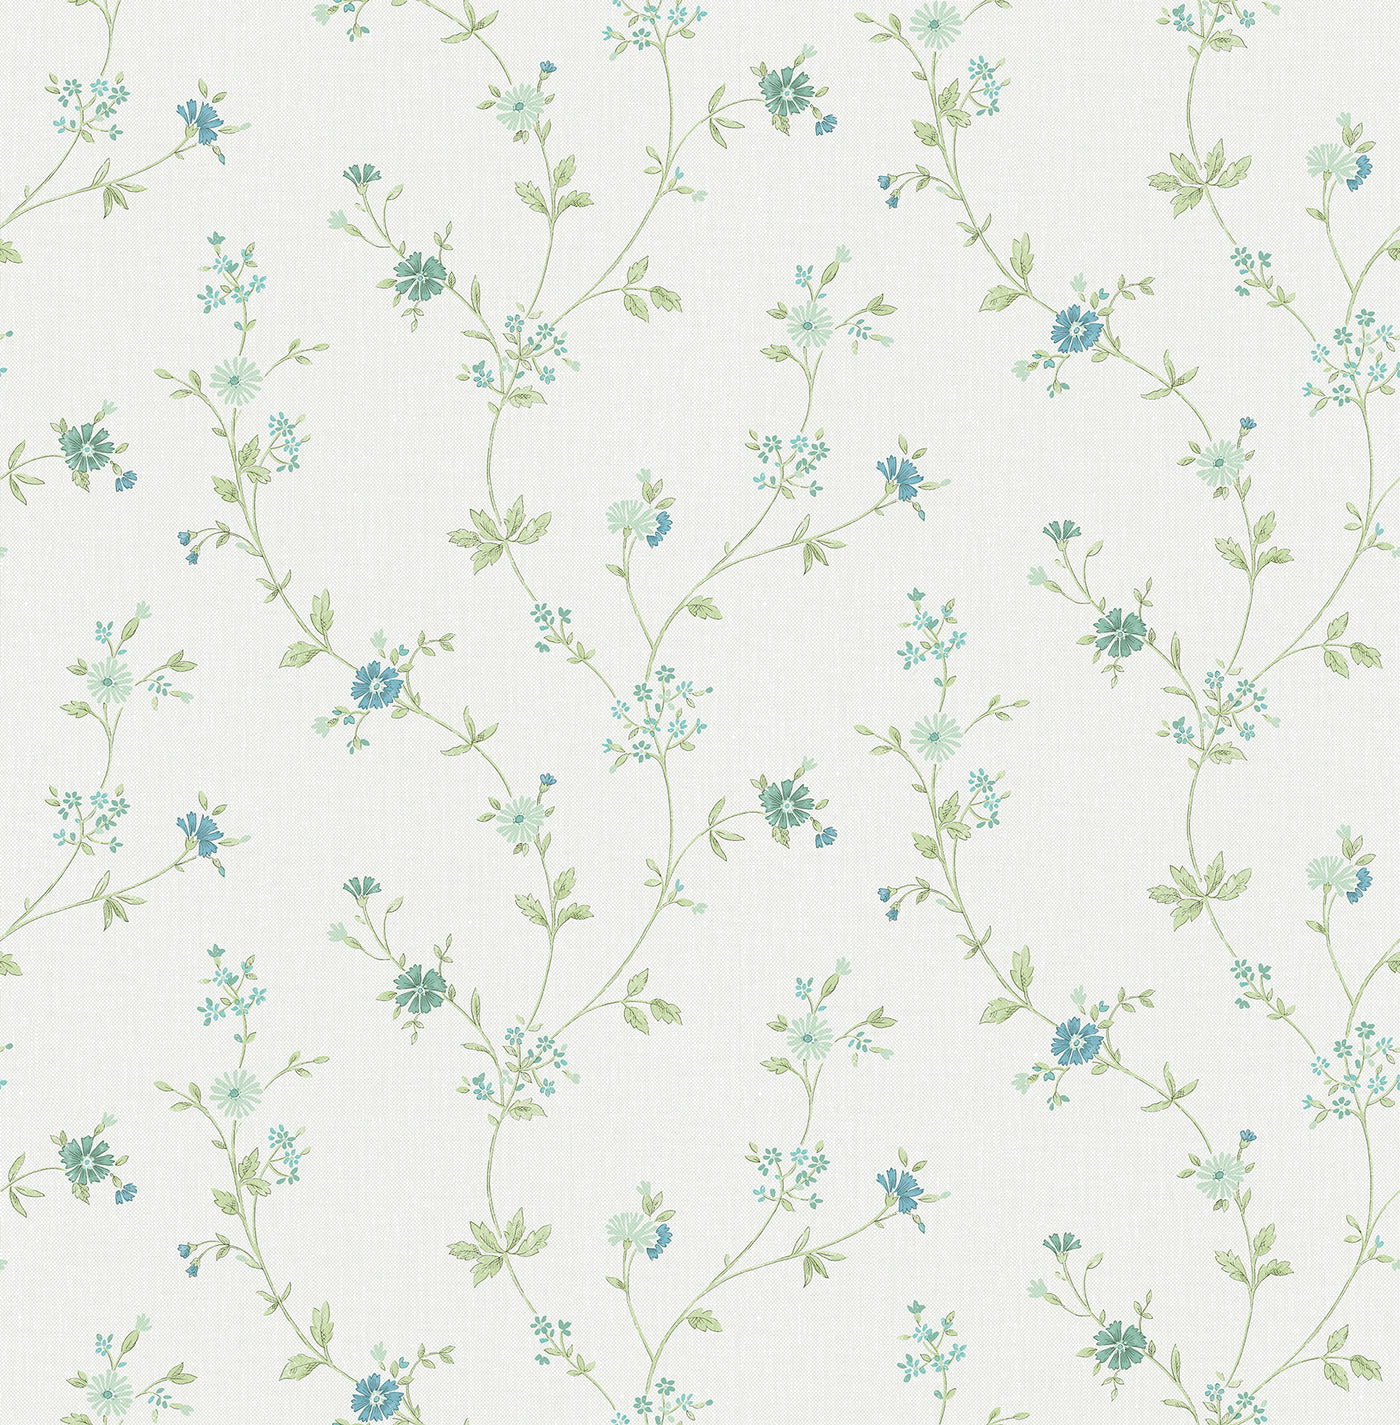 Sameulsson Light Blue Small Floral Trail Wallpaper Chic